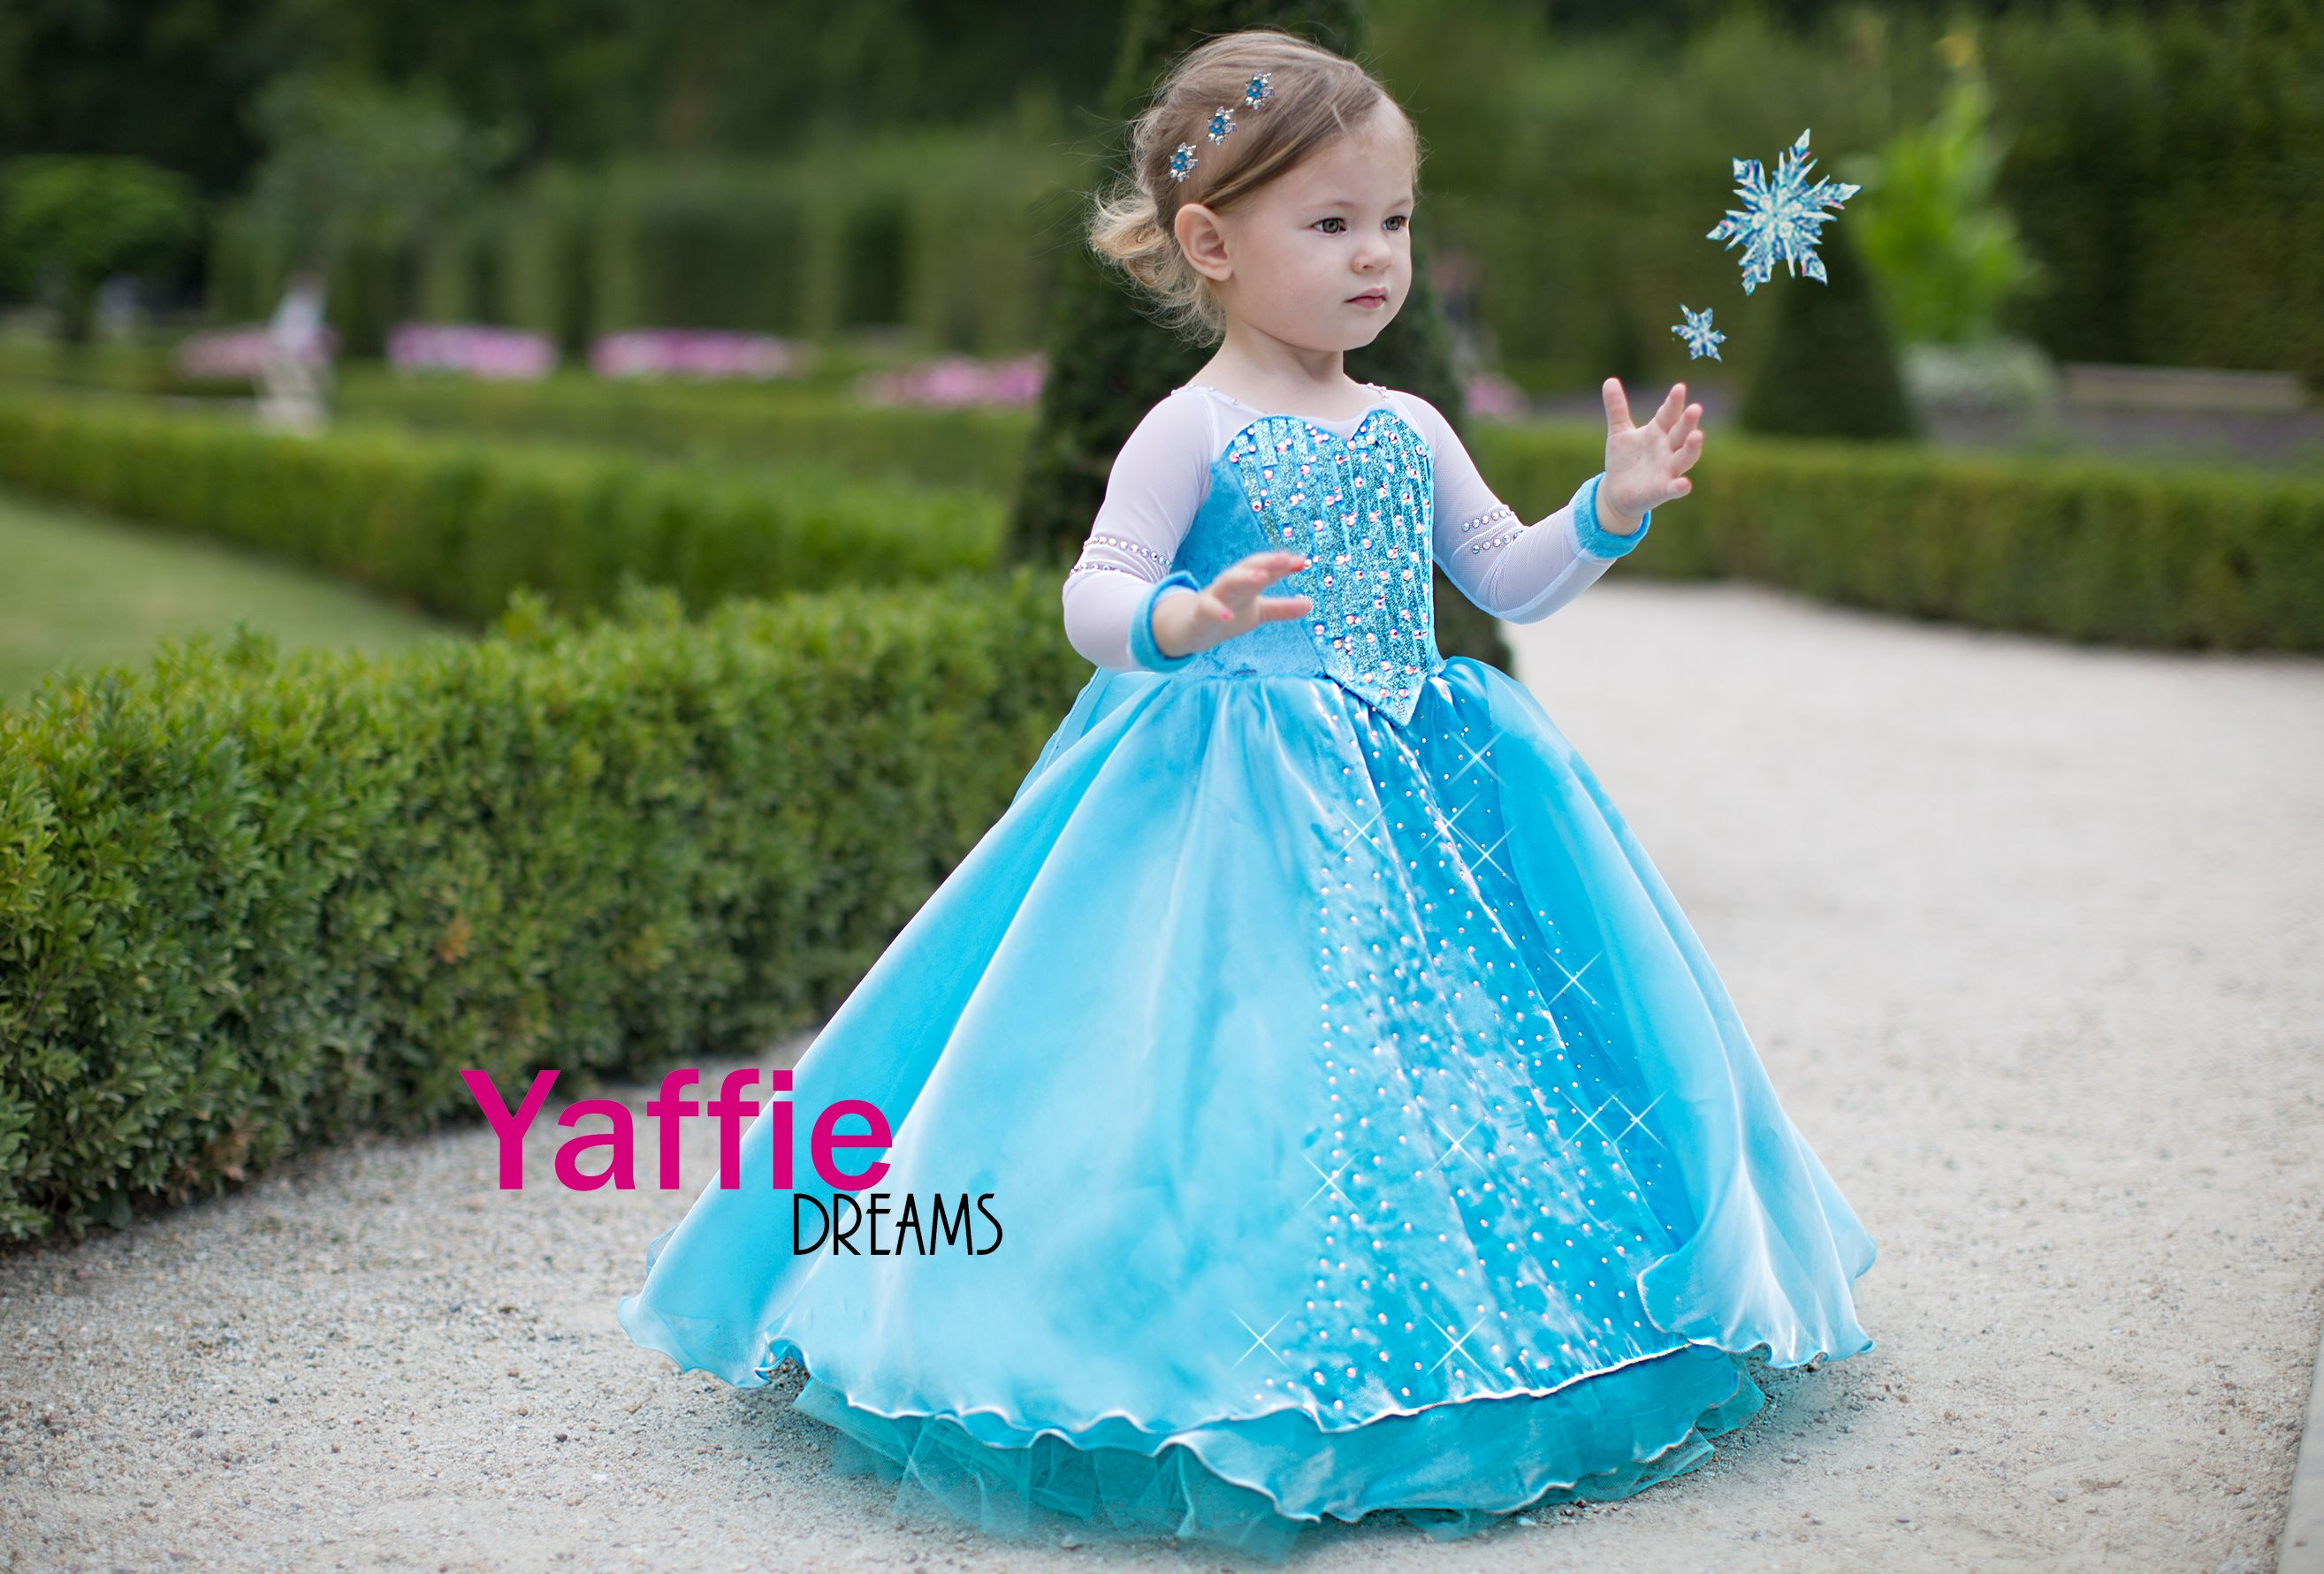 5f7f4d88e0e Elsa dress Disney princess costume Halloween outfit Frozen girl queen gown  let it go cosplay costume birthday party gift ideas beautiful toddler  Disneyland ...